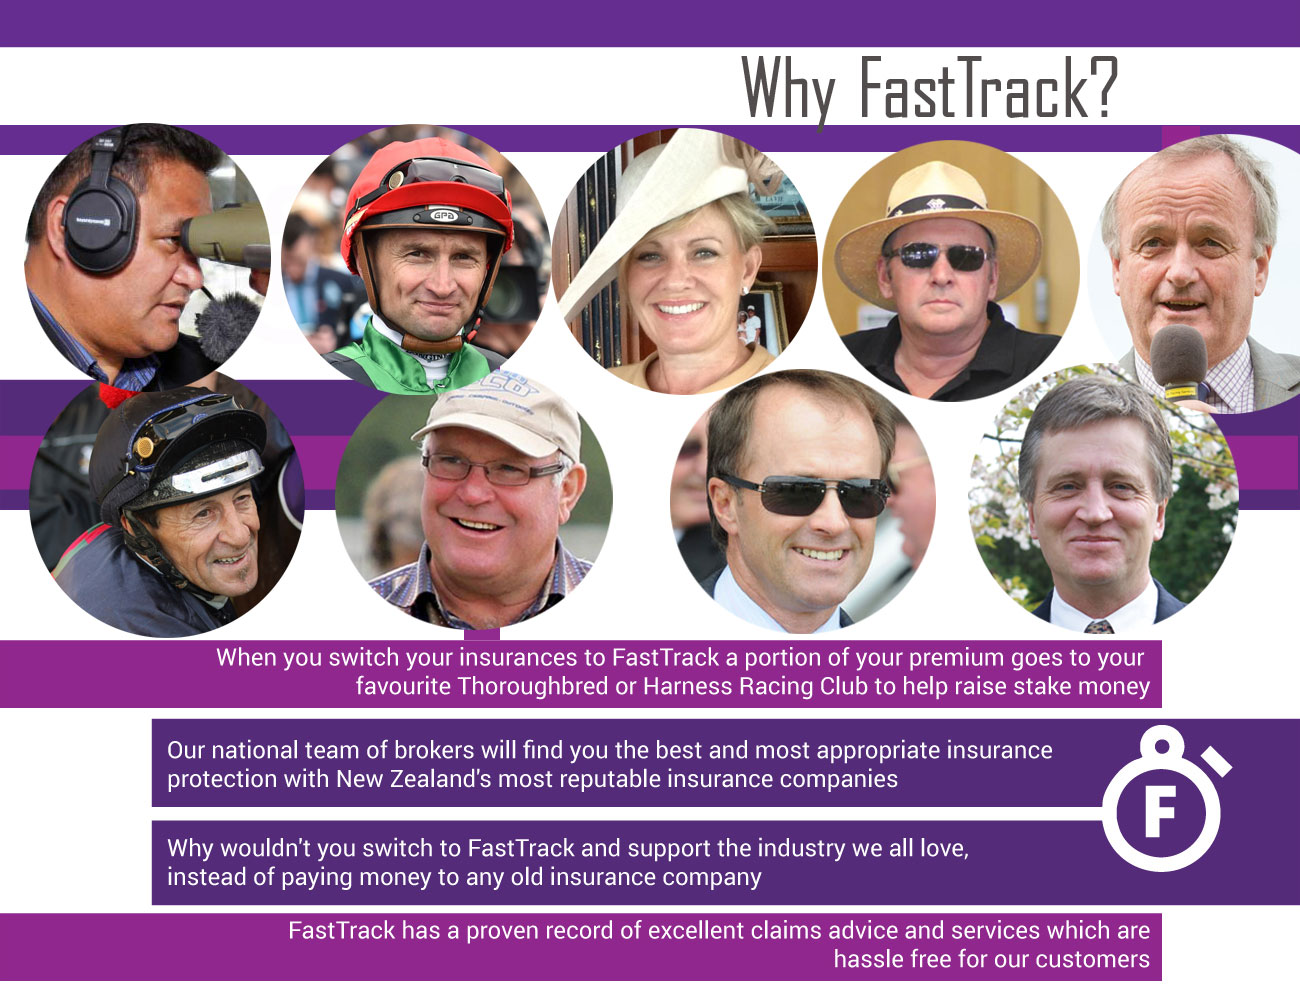 Why FastTrack